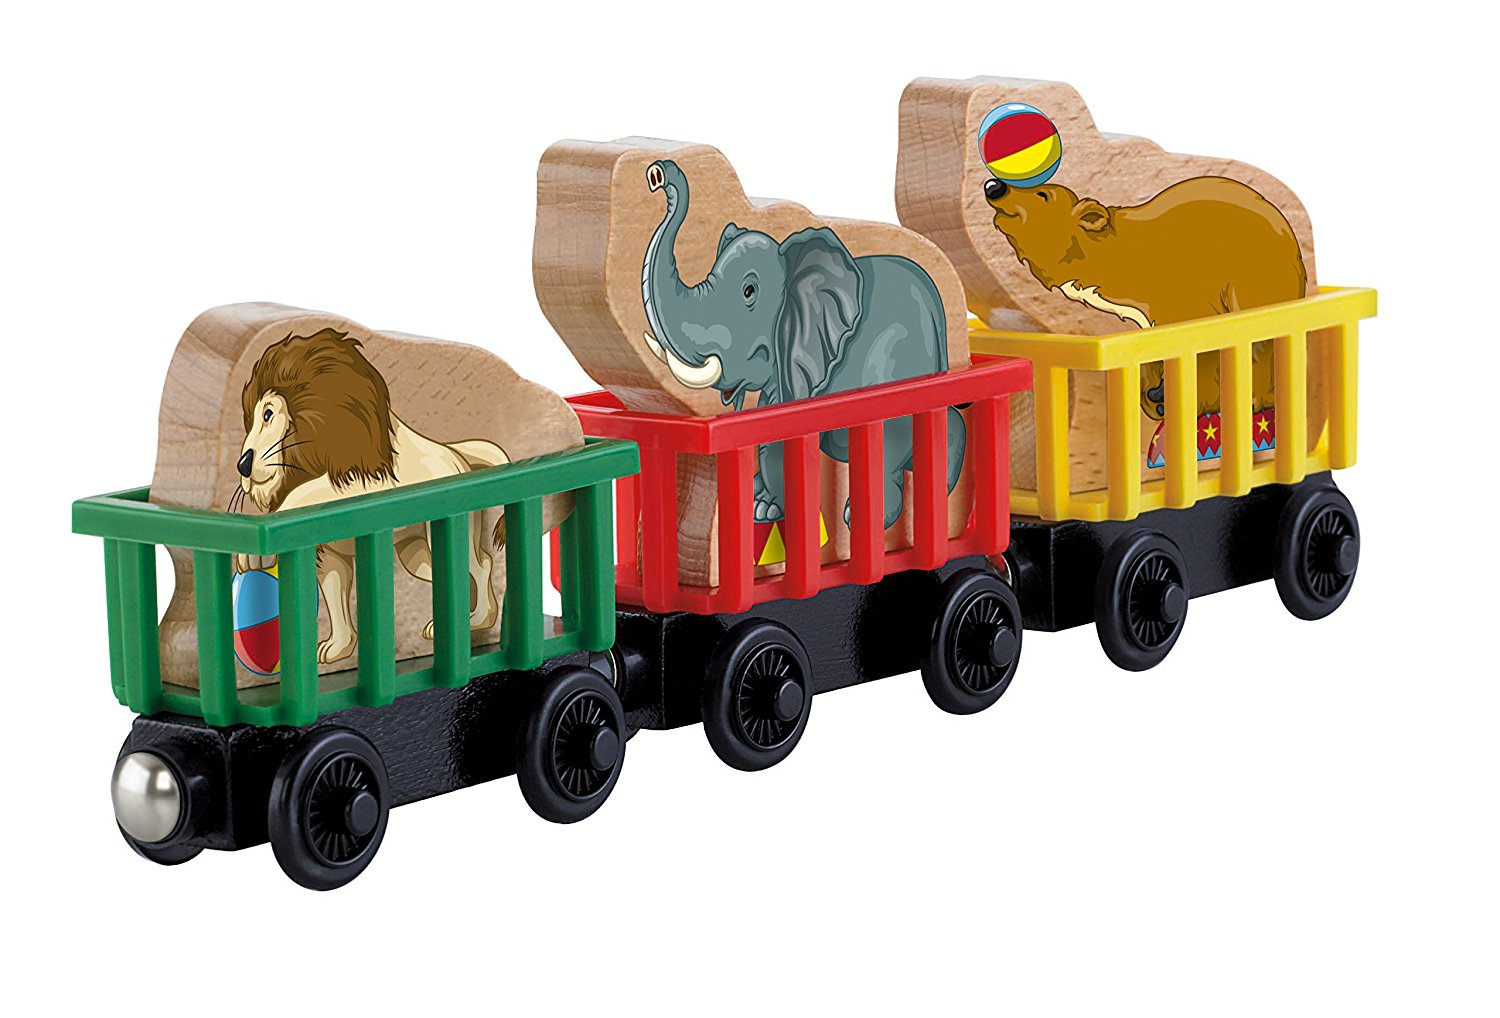 Fisher Price Thomas the Train Wooden Railway Circus Train 3-Pack Y5020